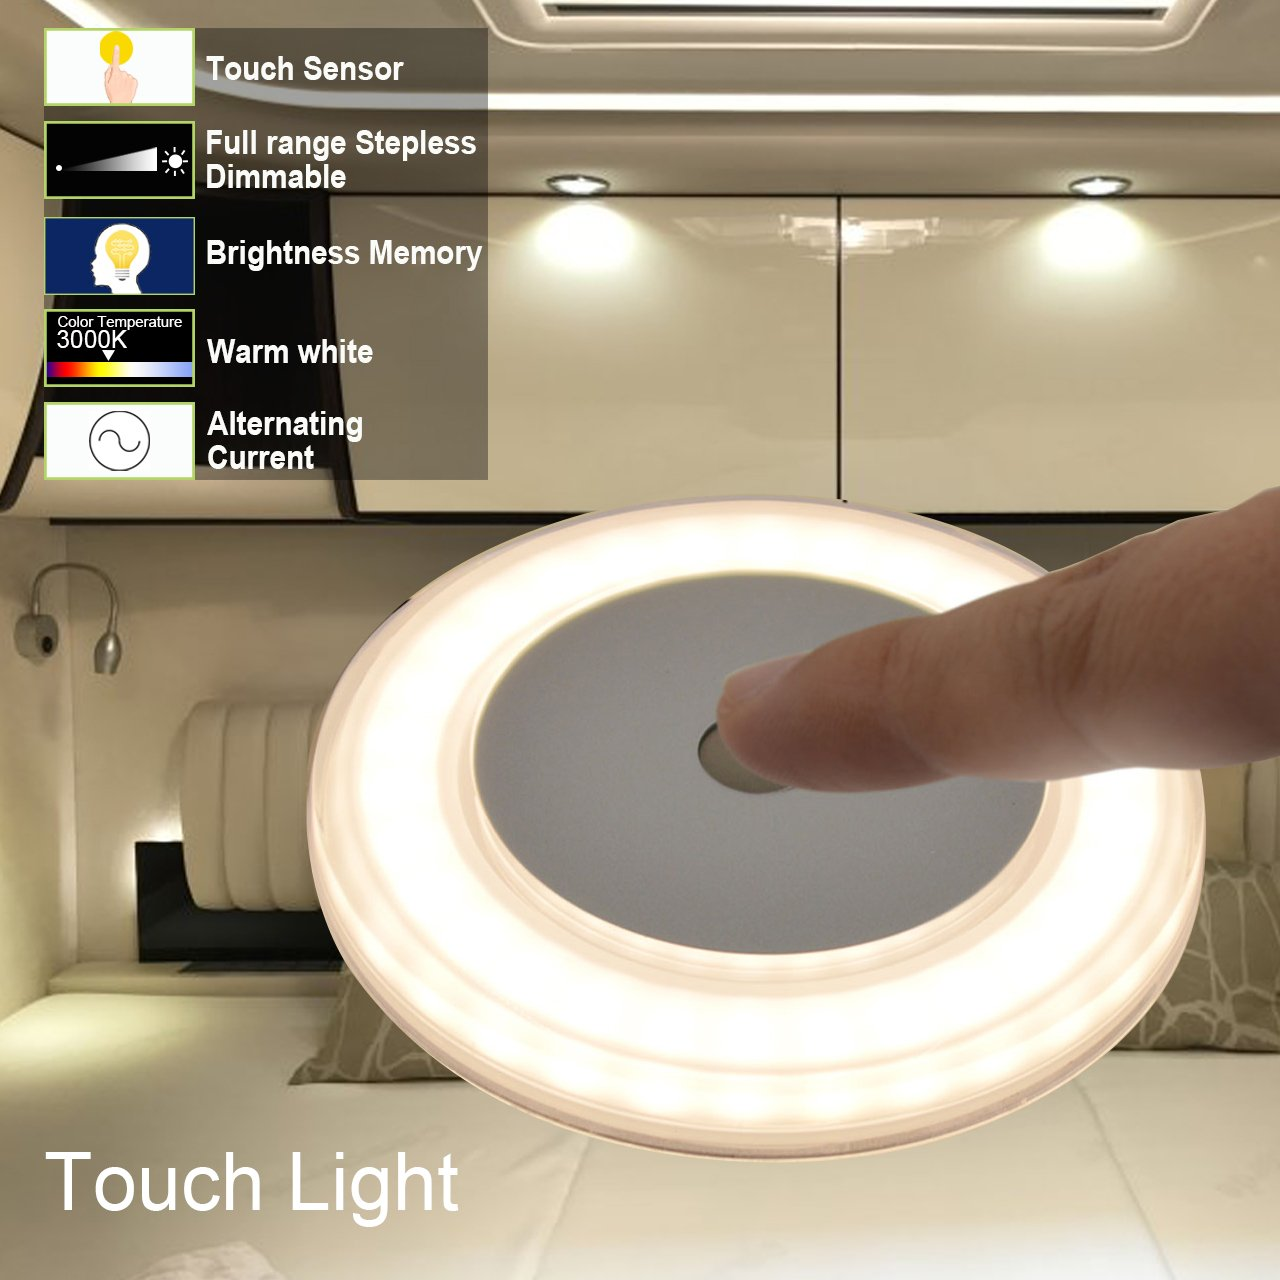 DC 12V 2800K Soft White Memory Light Annular Frosted Lens with Stepless Dimmable Hidden Fasteners Design with Stainless Steel Screws Surface Mount 3W RV Boat Touch Ceiling LED Light